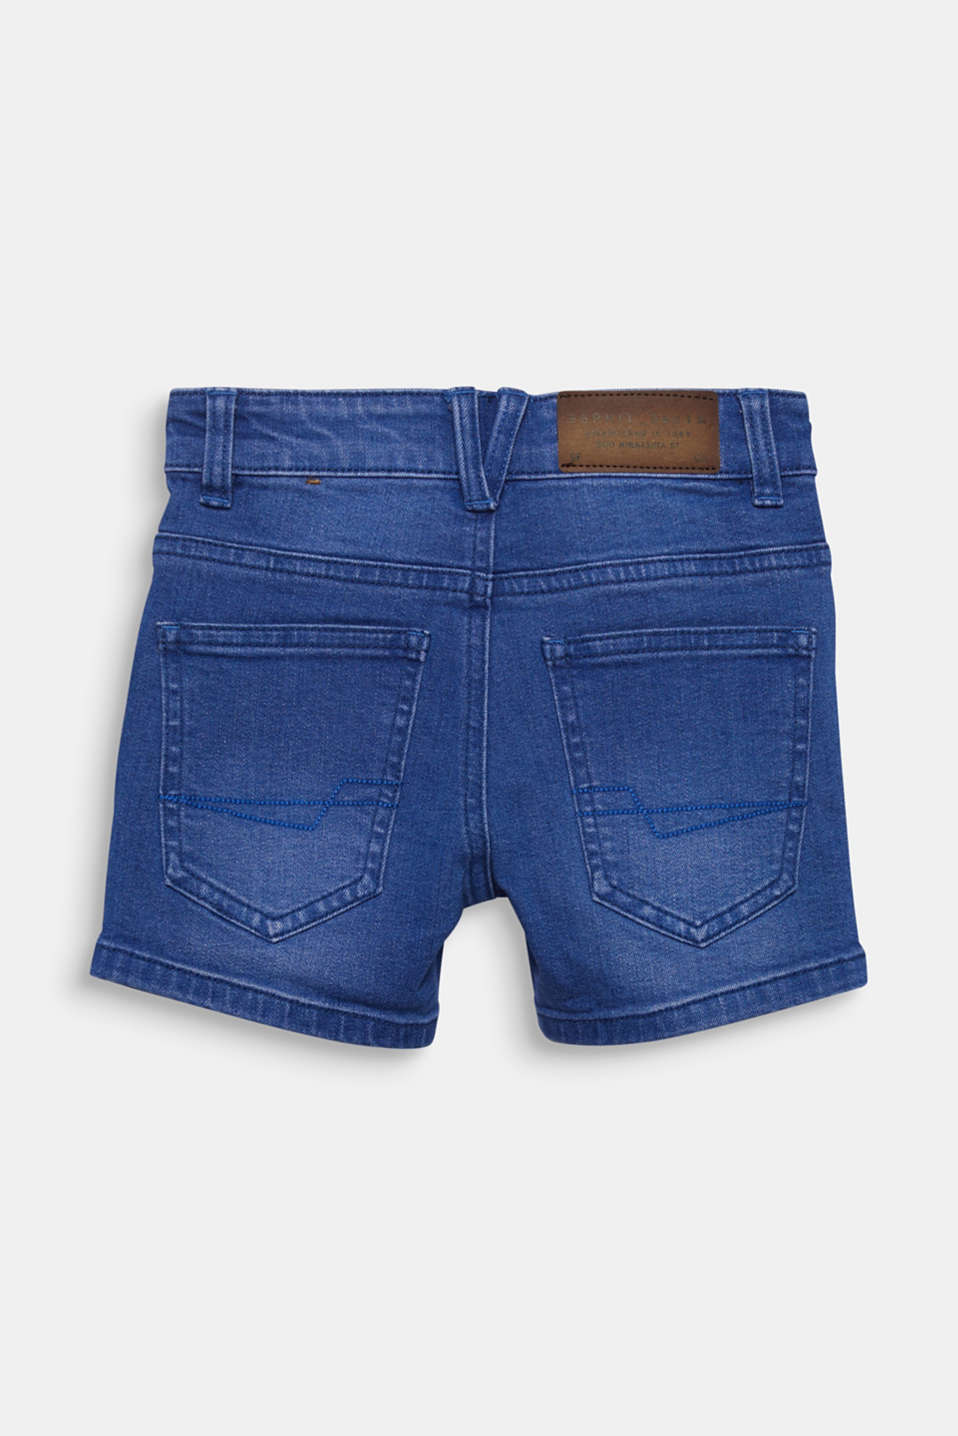 Stretch coloured denim shorts, adjustable waistband, BRIGHT BLUE DE, detail image number 1